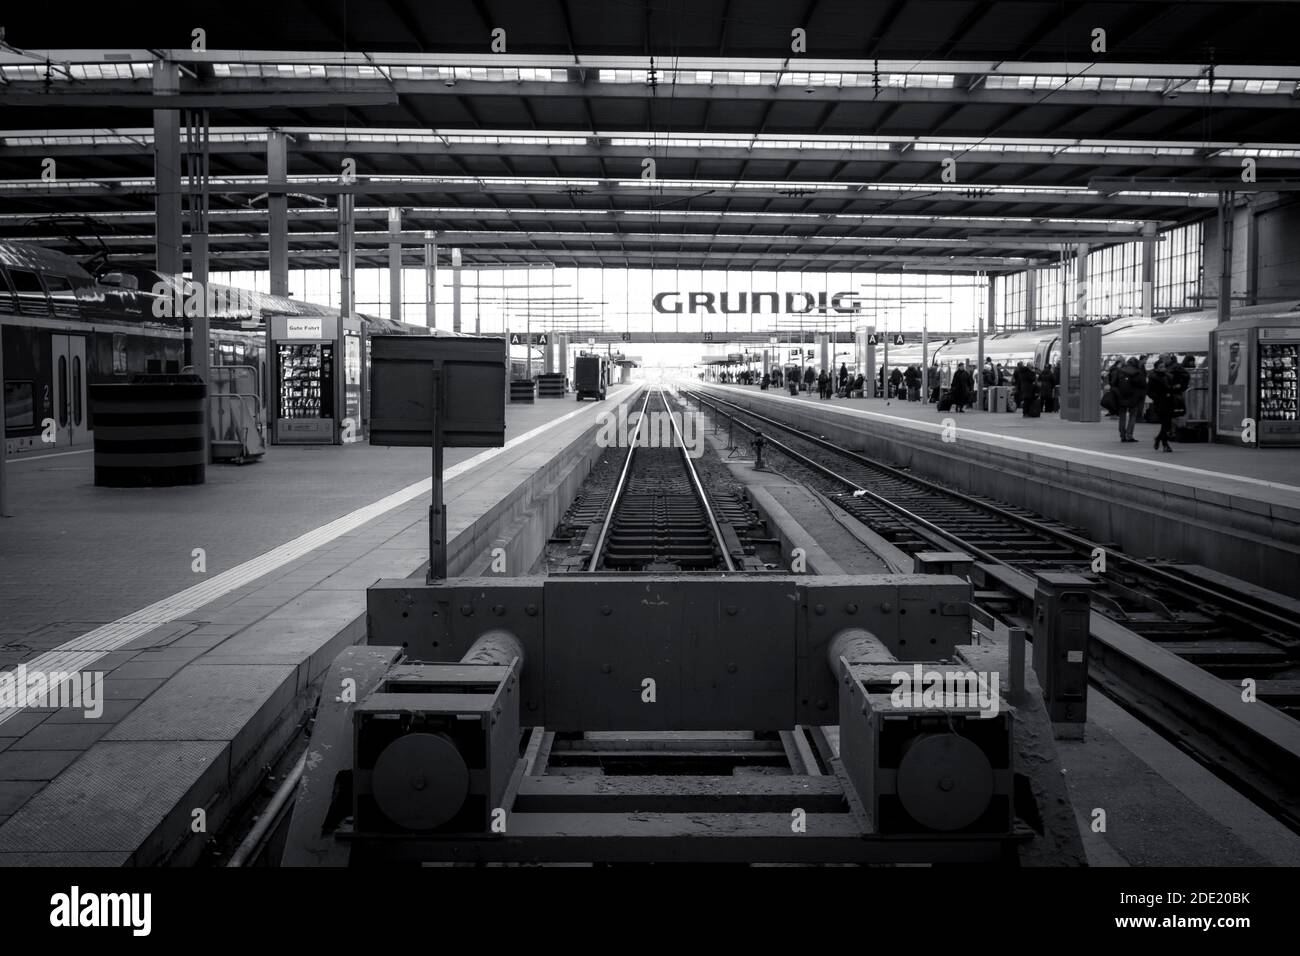 A view from behind the buffers, at an empty platform at Munich Central Train station, Munich, Germany Stock Photo